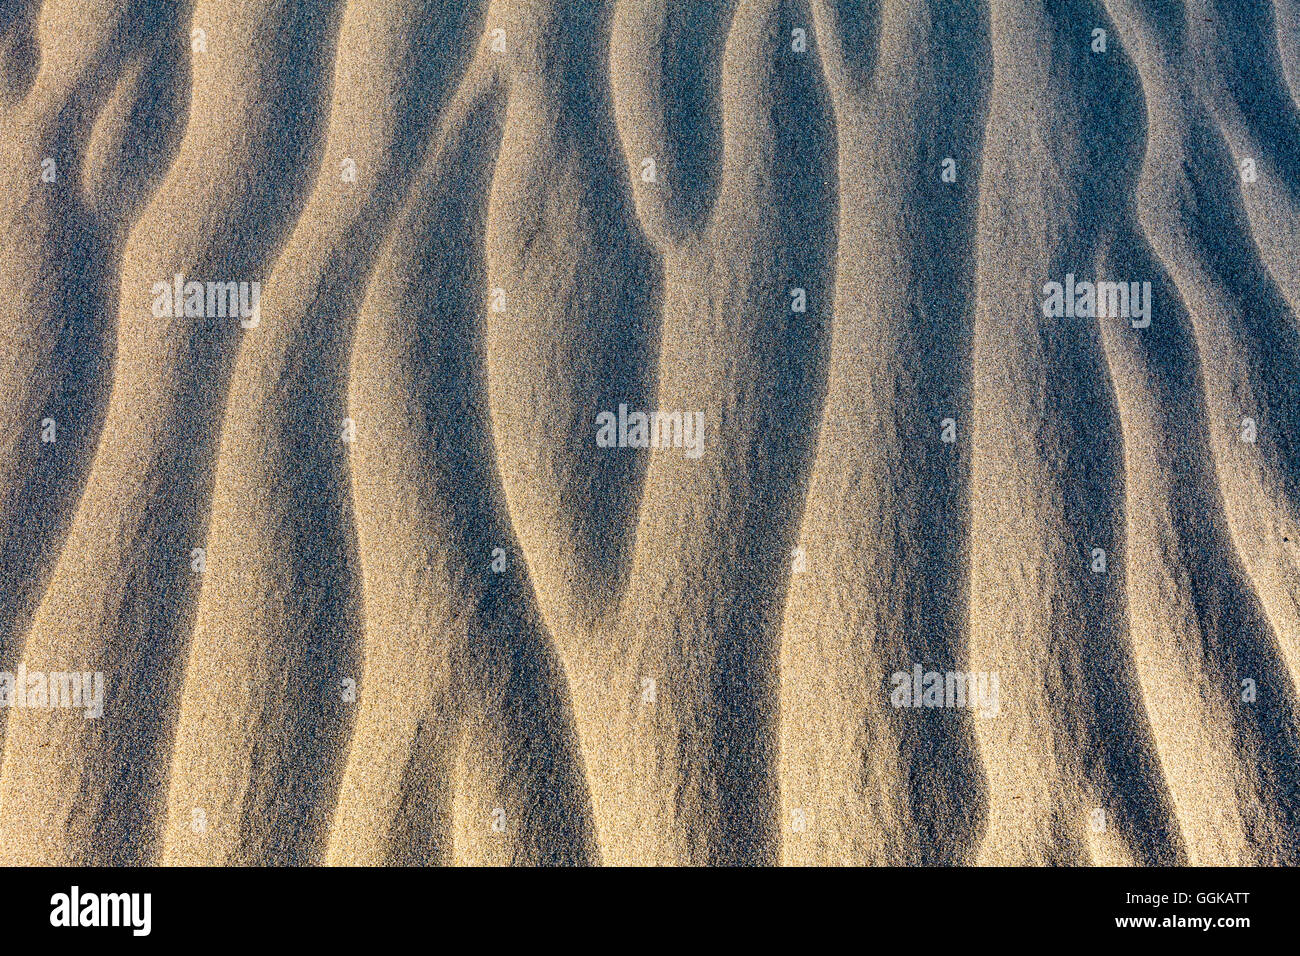 Patterns on a sand dune, Dunes of Maspalomas, Gran Canaria, Canary Islands, Spain - Stock Image